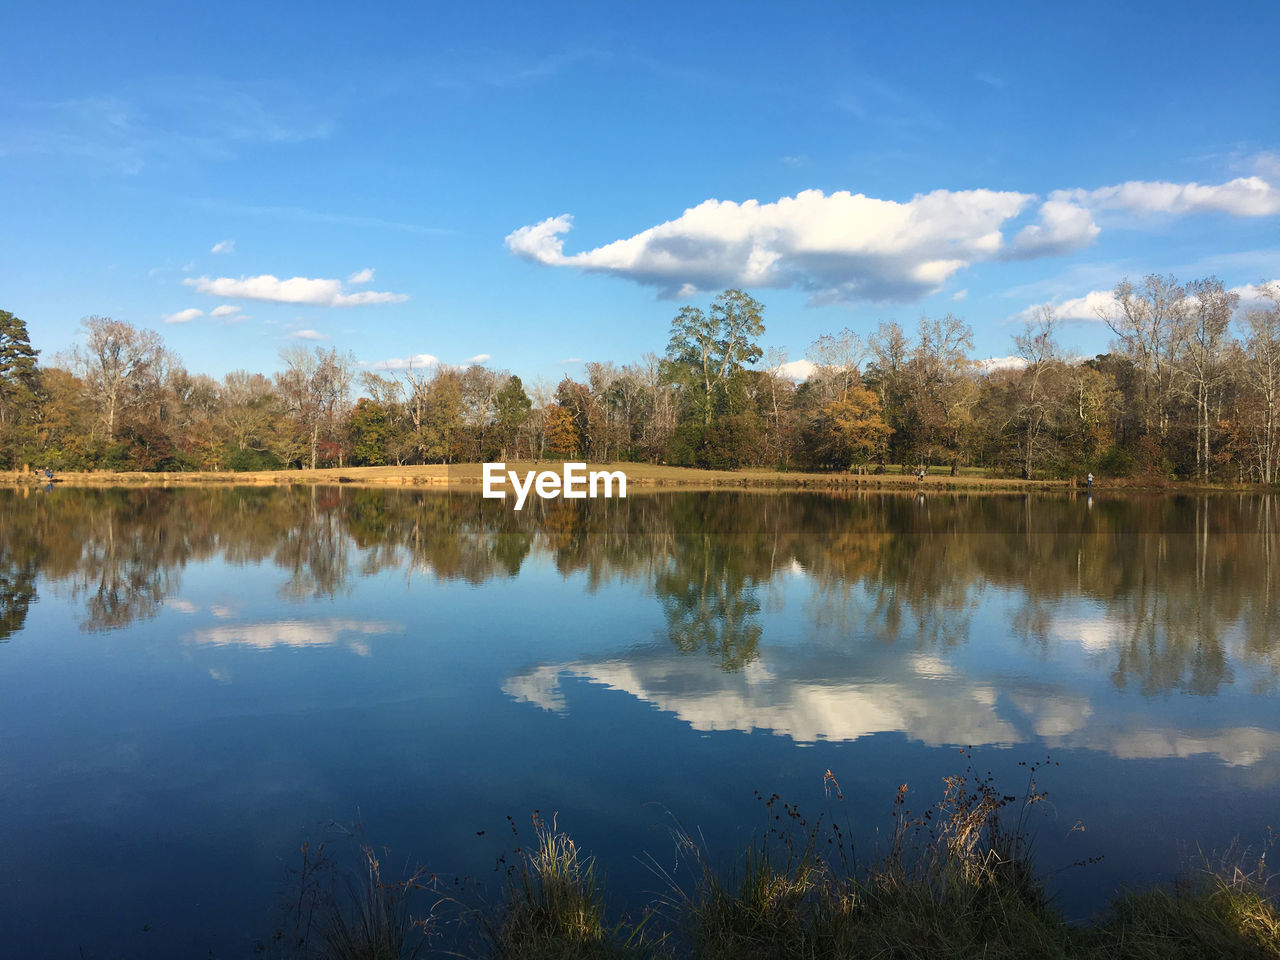 reflection, lake, sky, nature, water, tree, beauty in nature, tranquility, tranquil scene, scenics, standing water, cloud - sky, outdoors, no people, blue, day